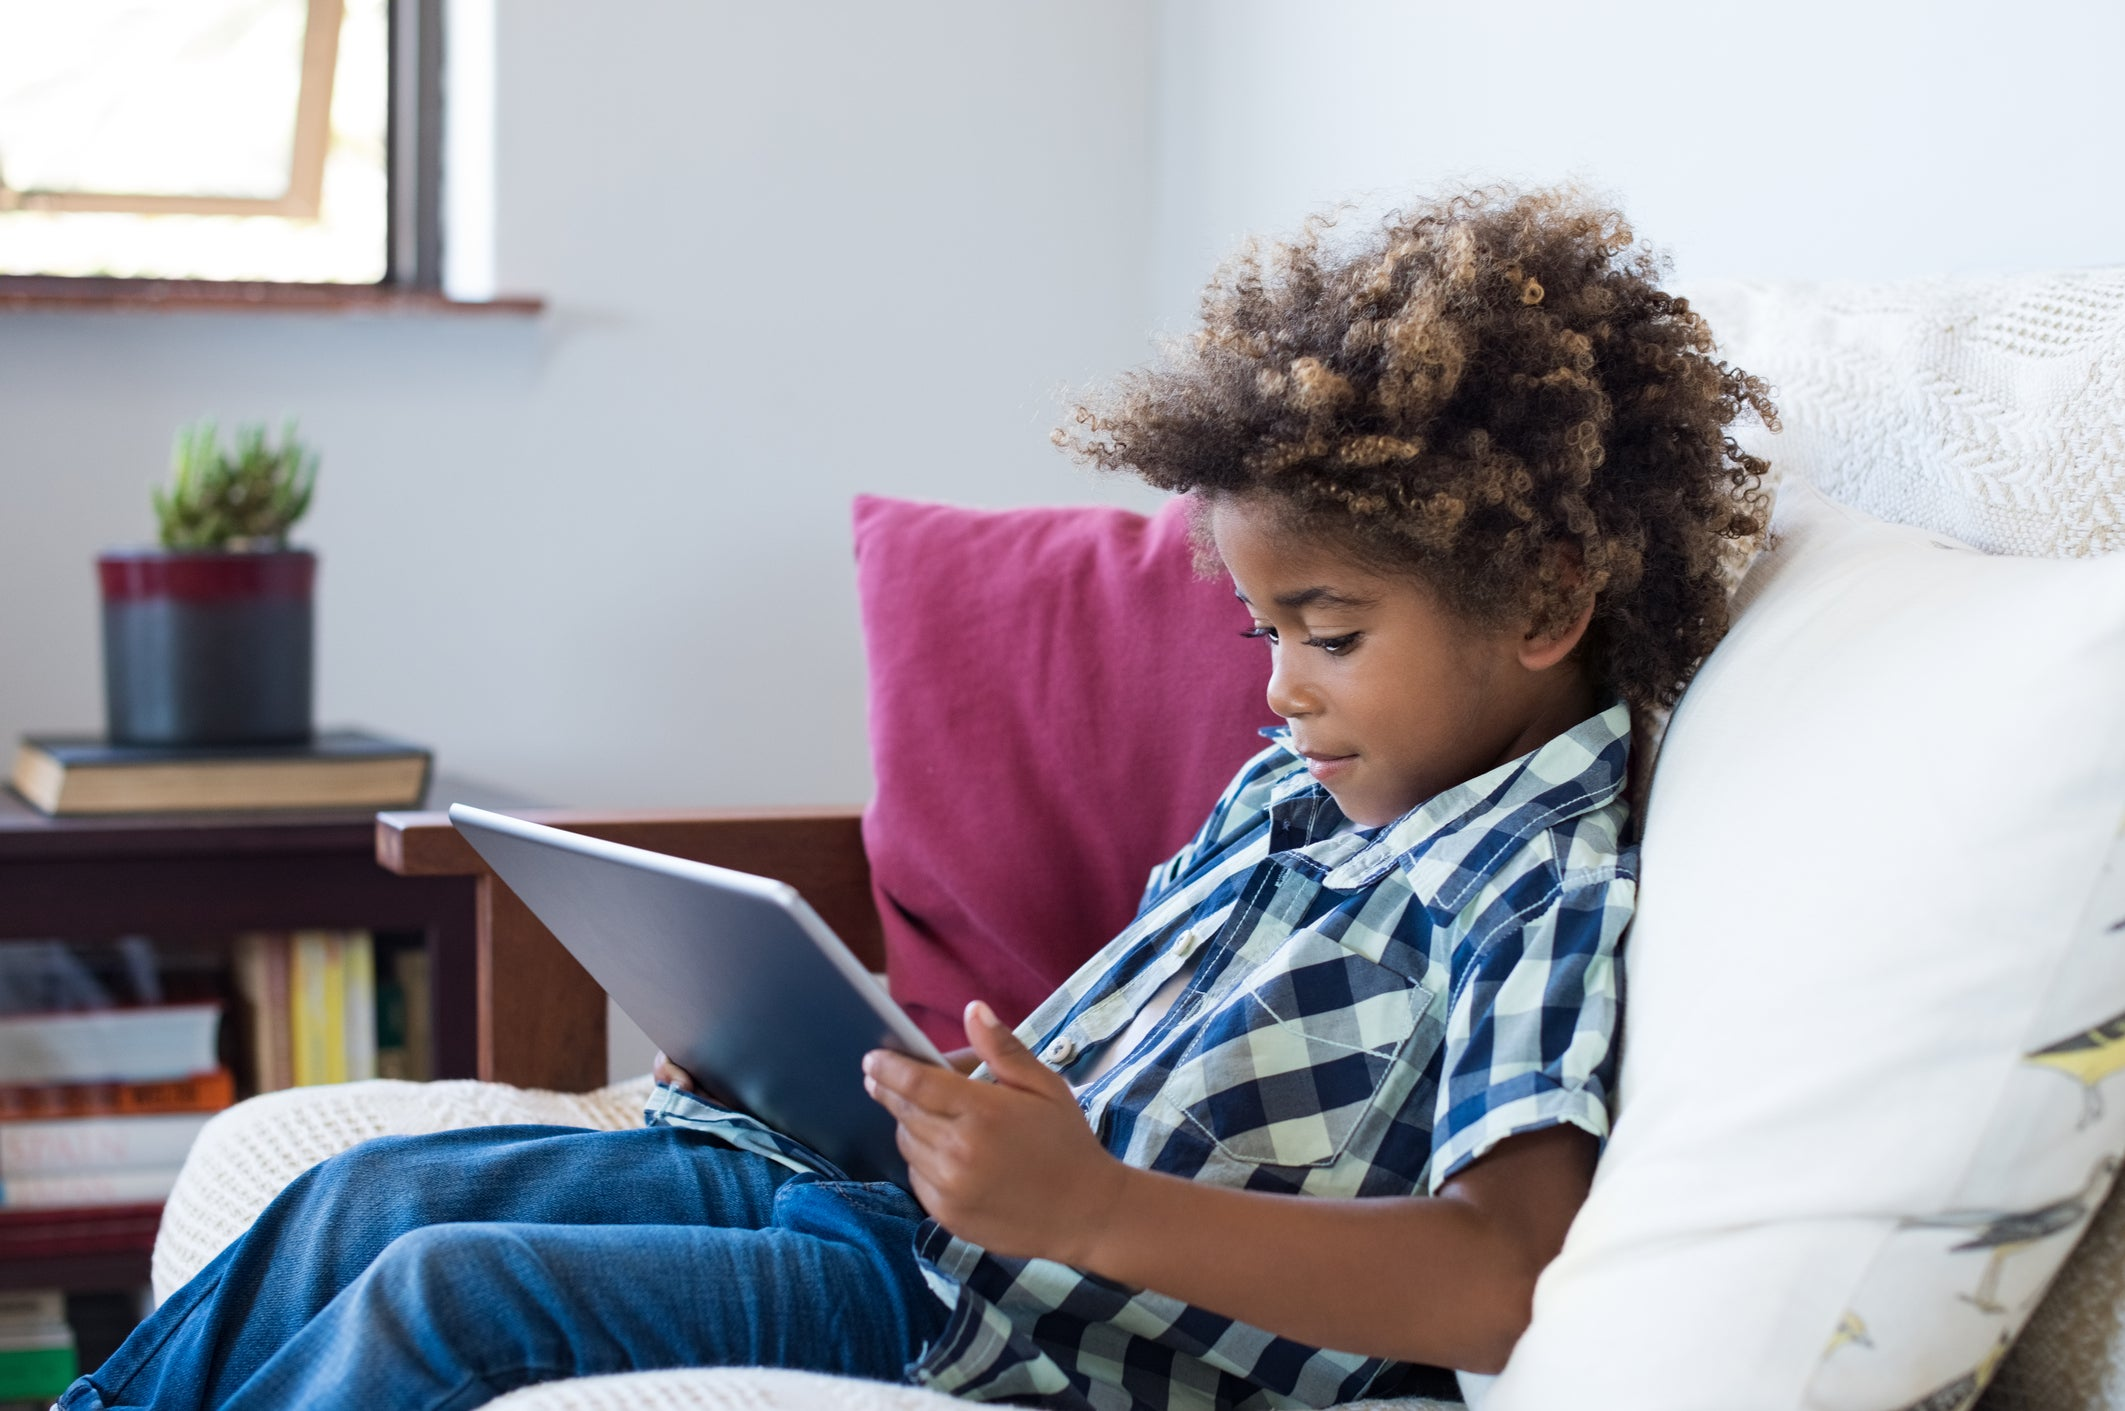 A child watching something on a tablet